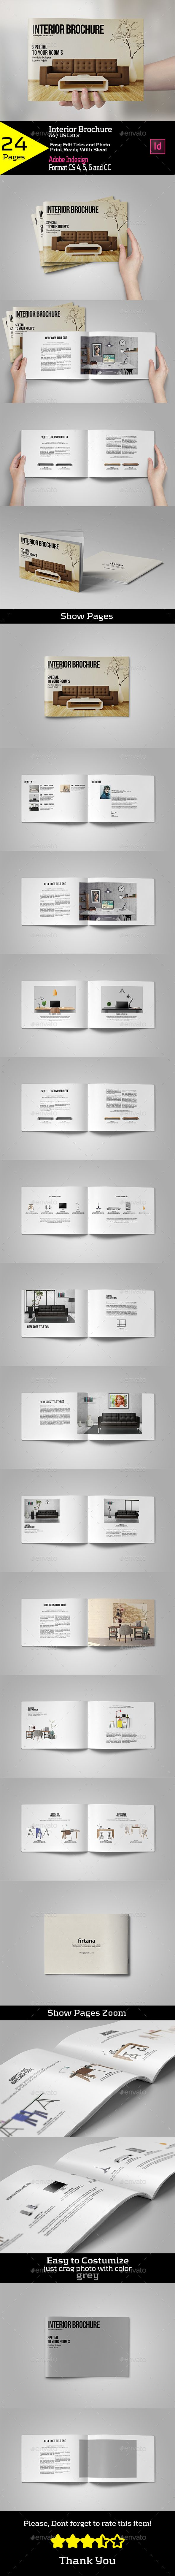 Interior Brochure A4/US Letter Template InDesign INDD #design Download: http://graphicriver.net/item/interior-brochure-a4us-letter/13369968?ref=ksioks